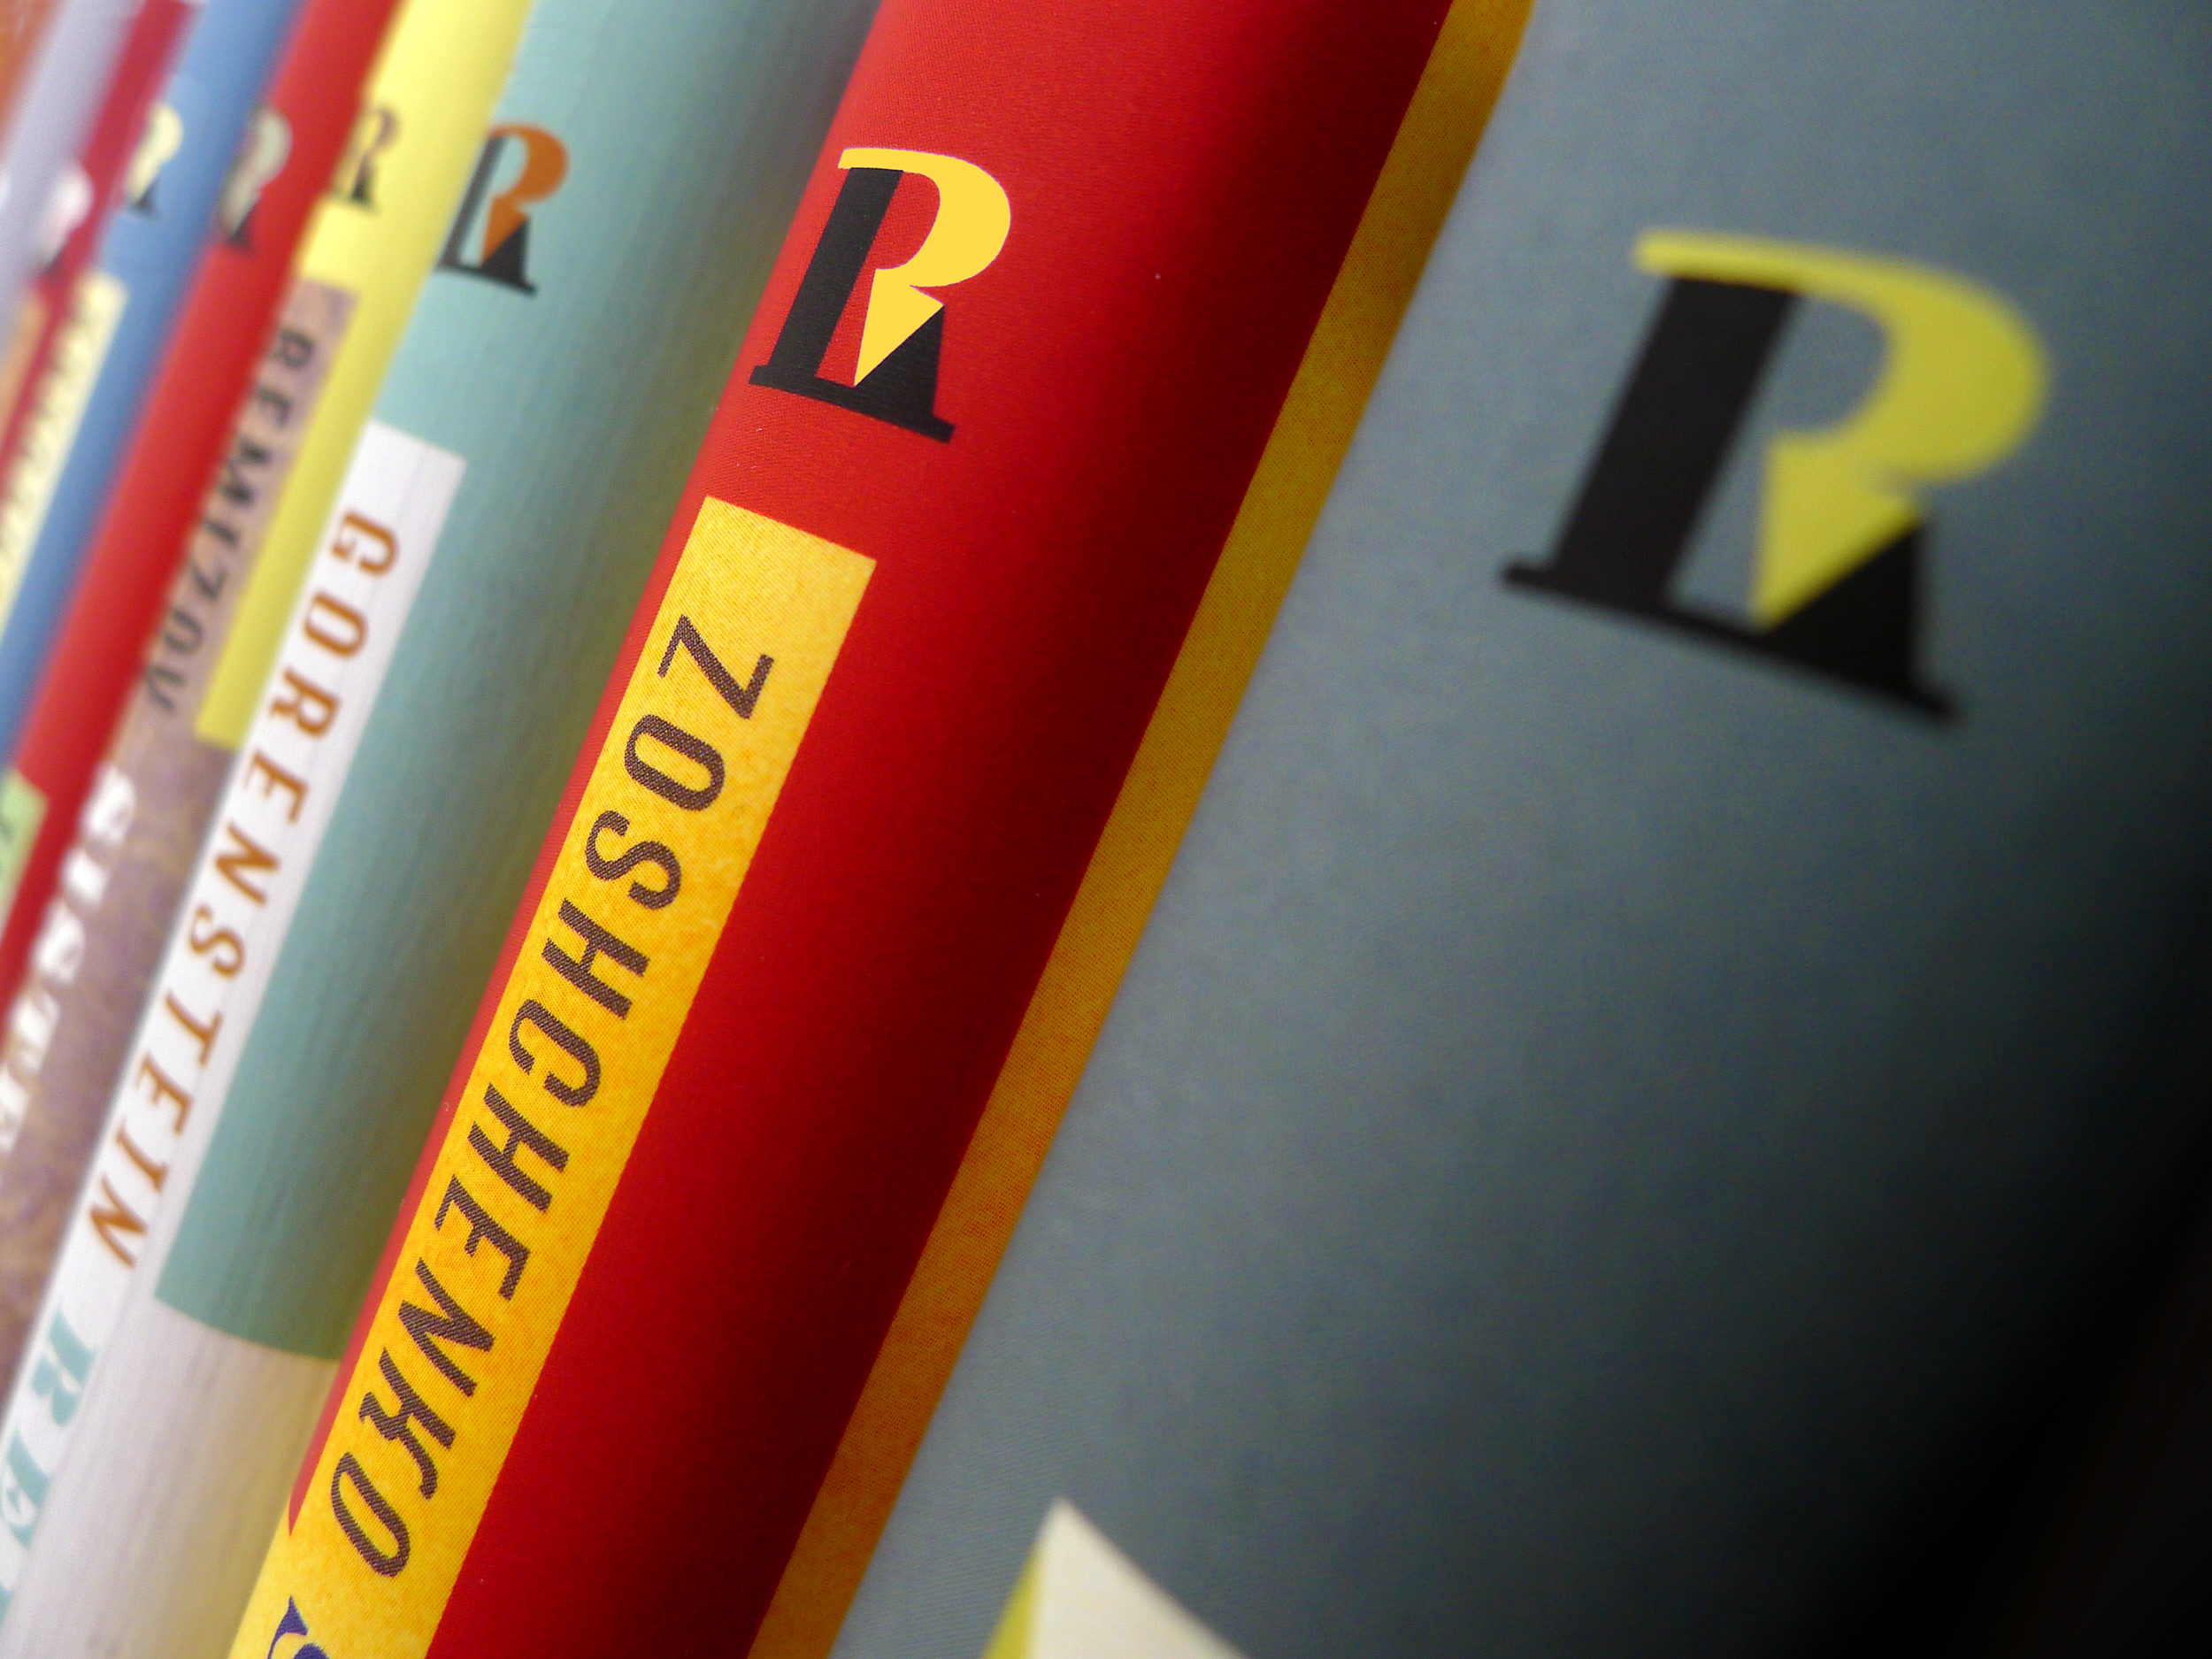 RL_book_spines_logo_2.jpg